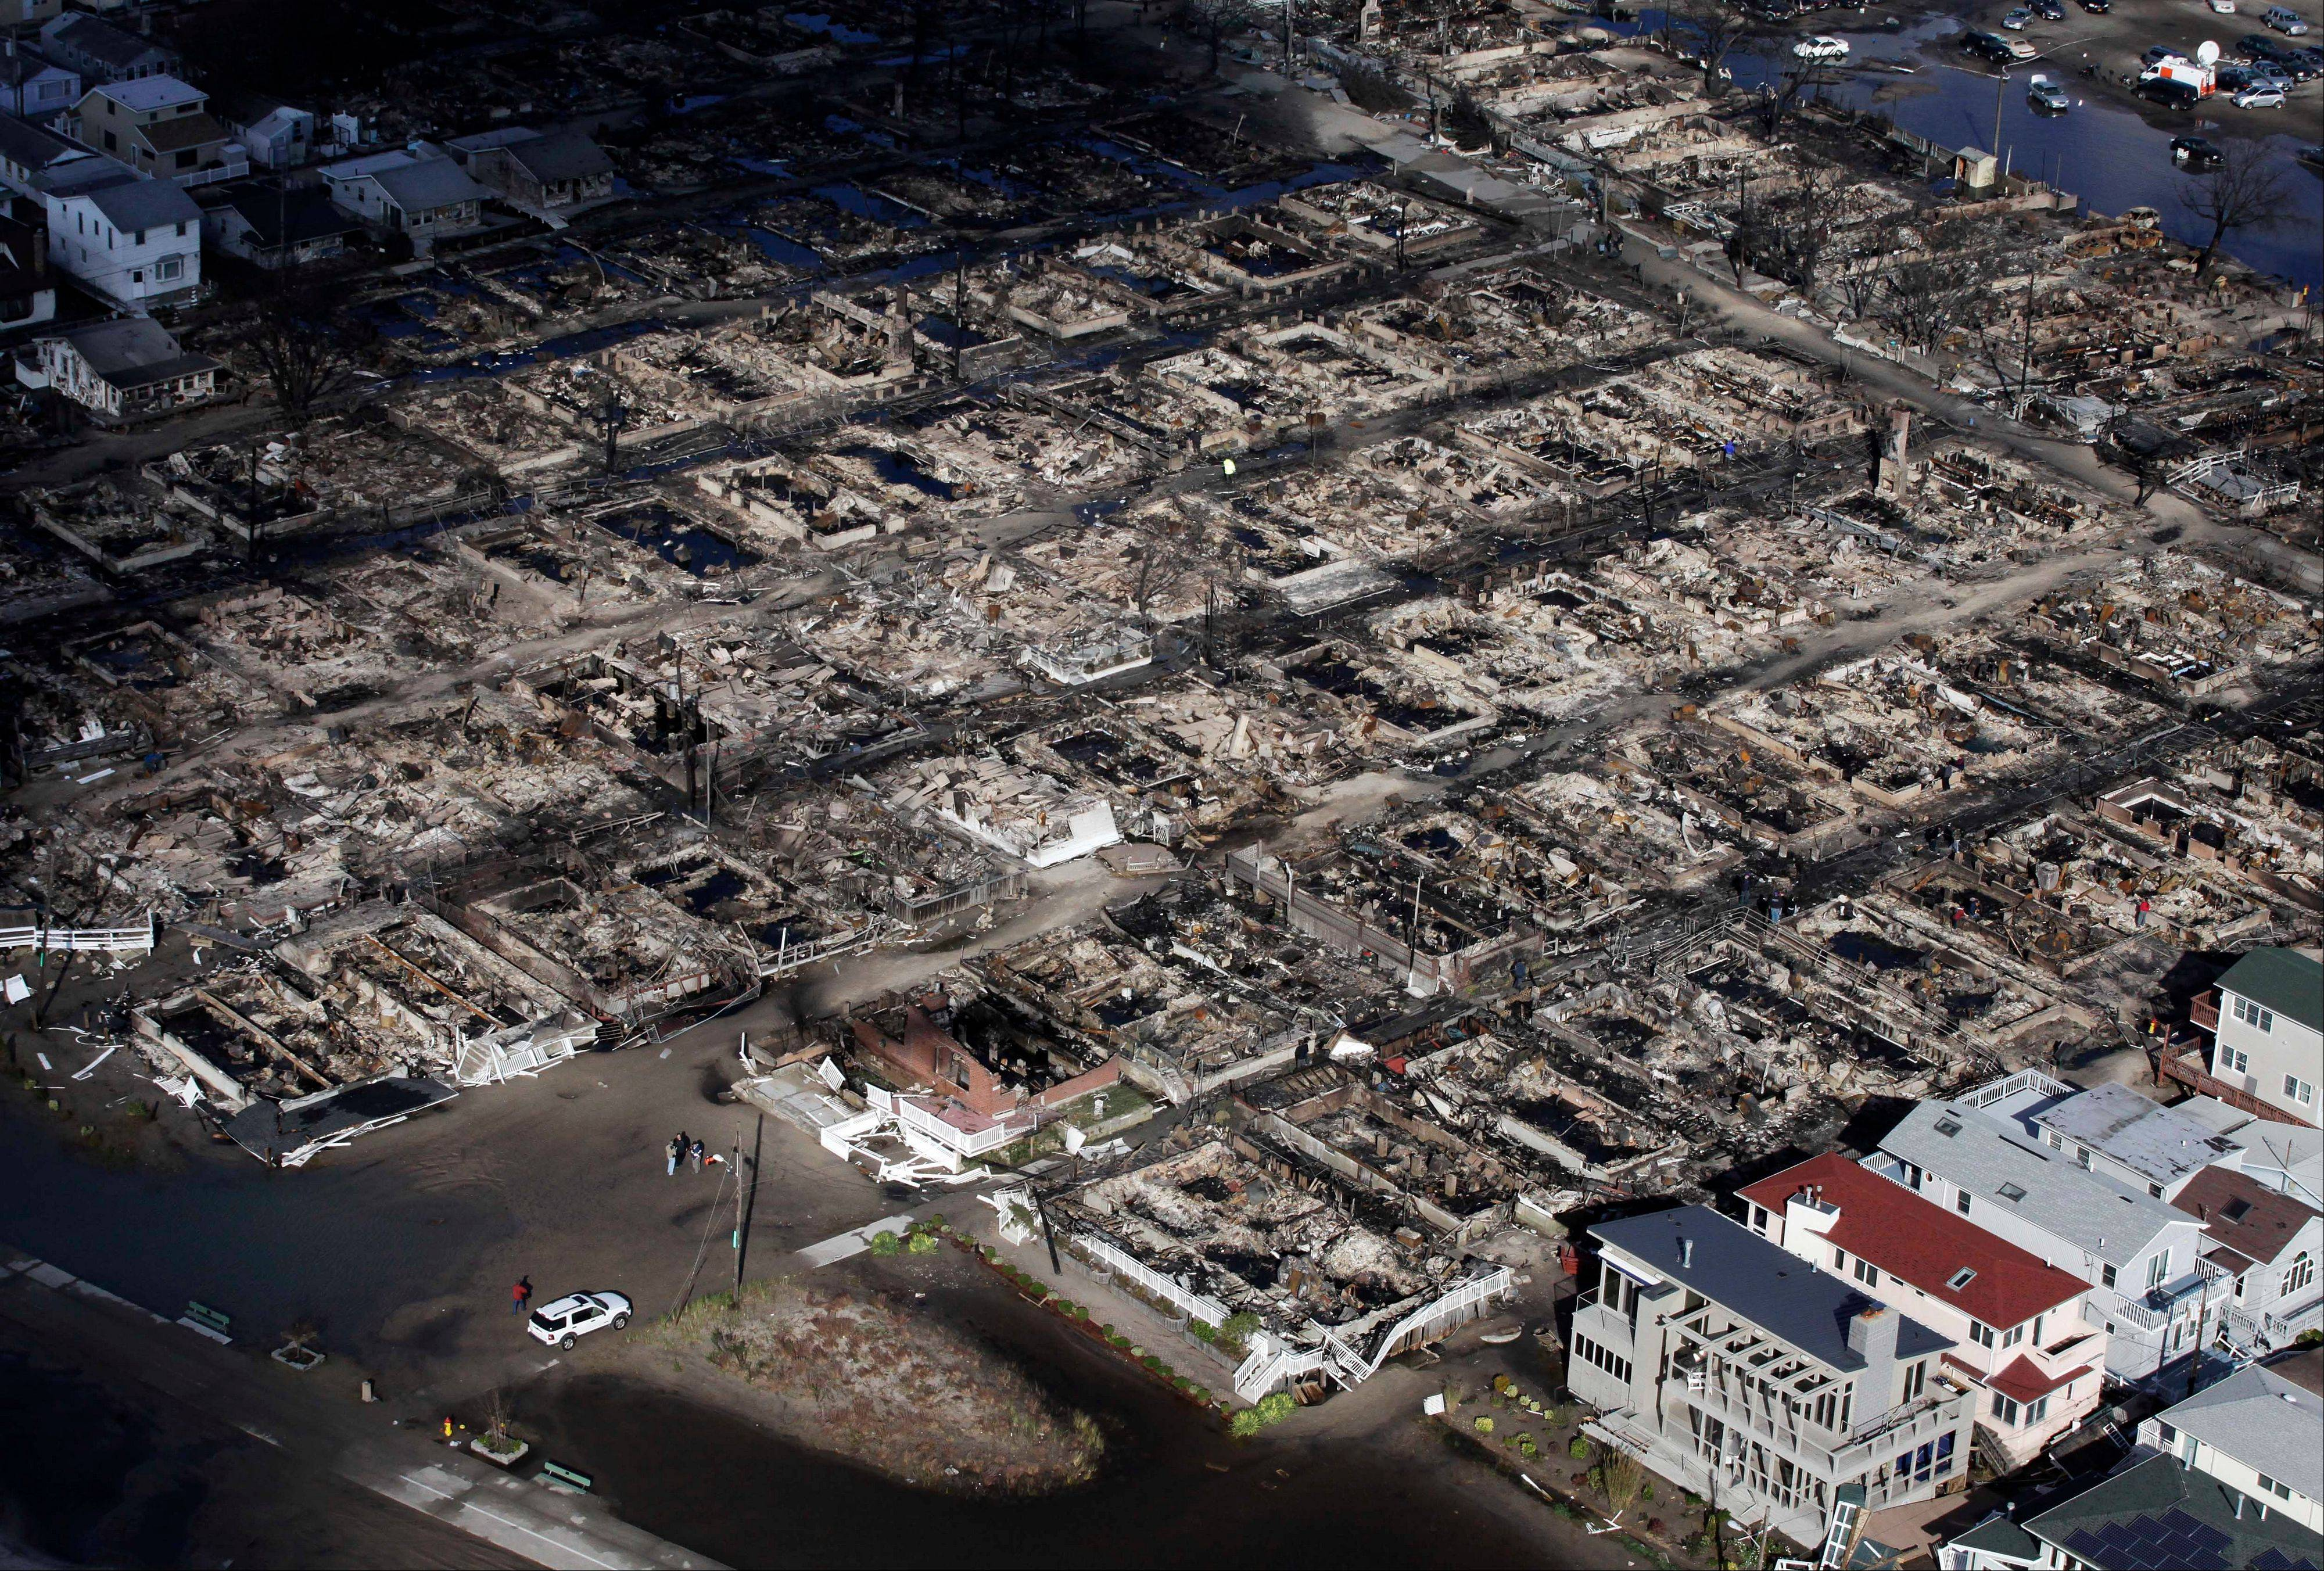 This aerial photo shows the Breezy Point neighborhood, in New York, Wednesday, Oct. 31, 2012, where more than 50 homes were burned to the ground Monday night as a result of superstorm Sandy. Sandy, the storm that made landfall Monday, caused multiple fatalities, halted mass transit and cut power to more than 6 million homes and businesses.